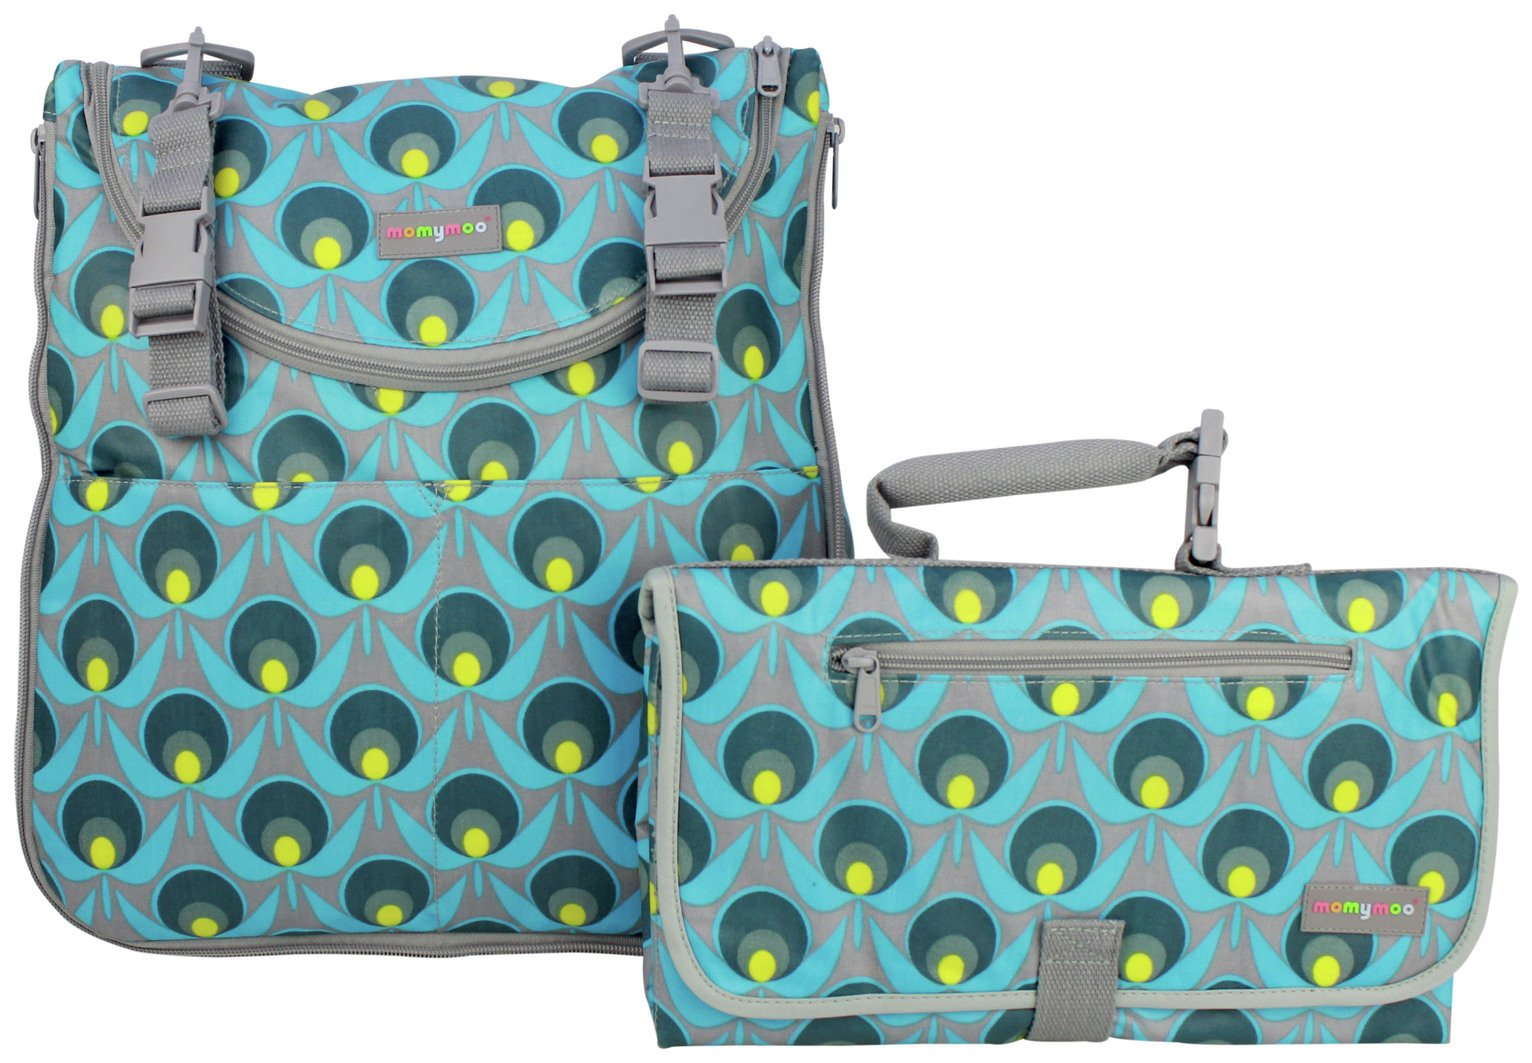 Momymoo Maia Geo Daisy Changing Bag with Free Changing Mat